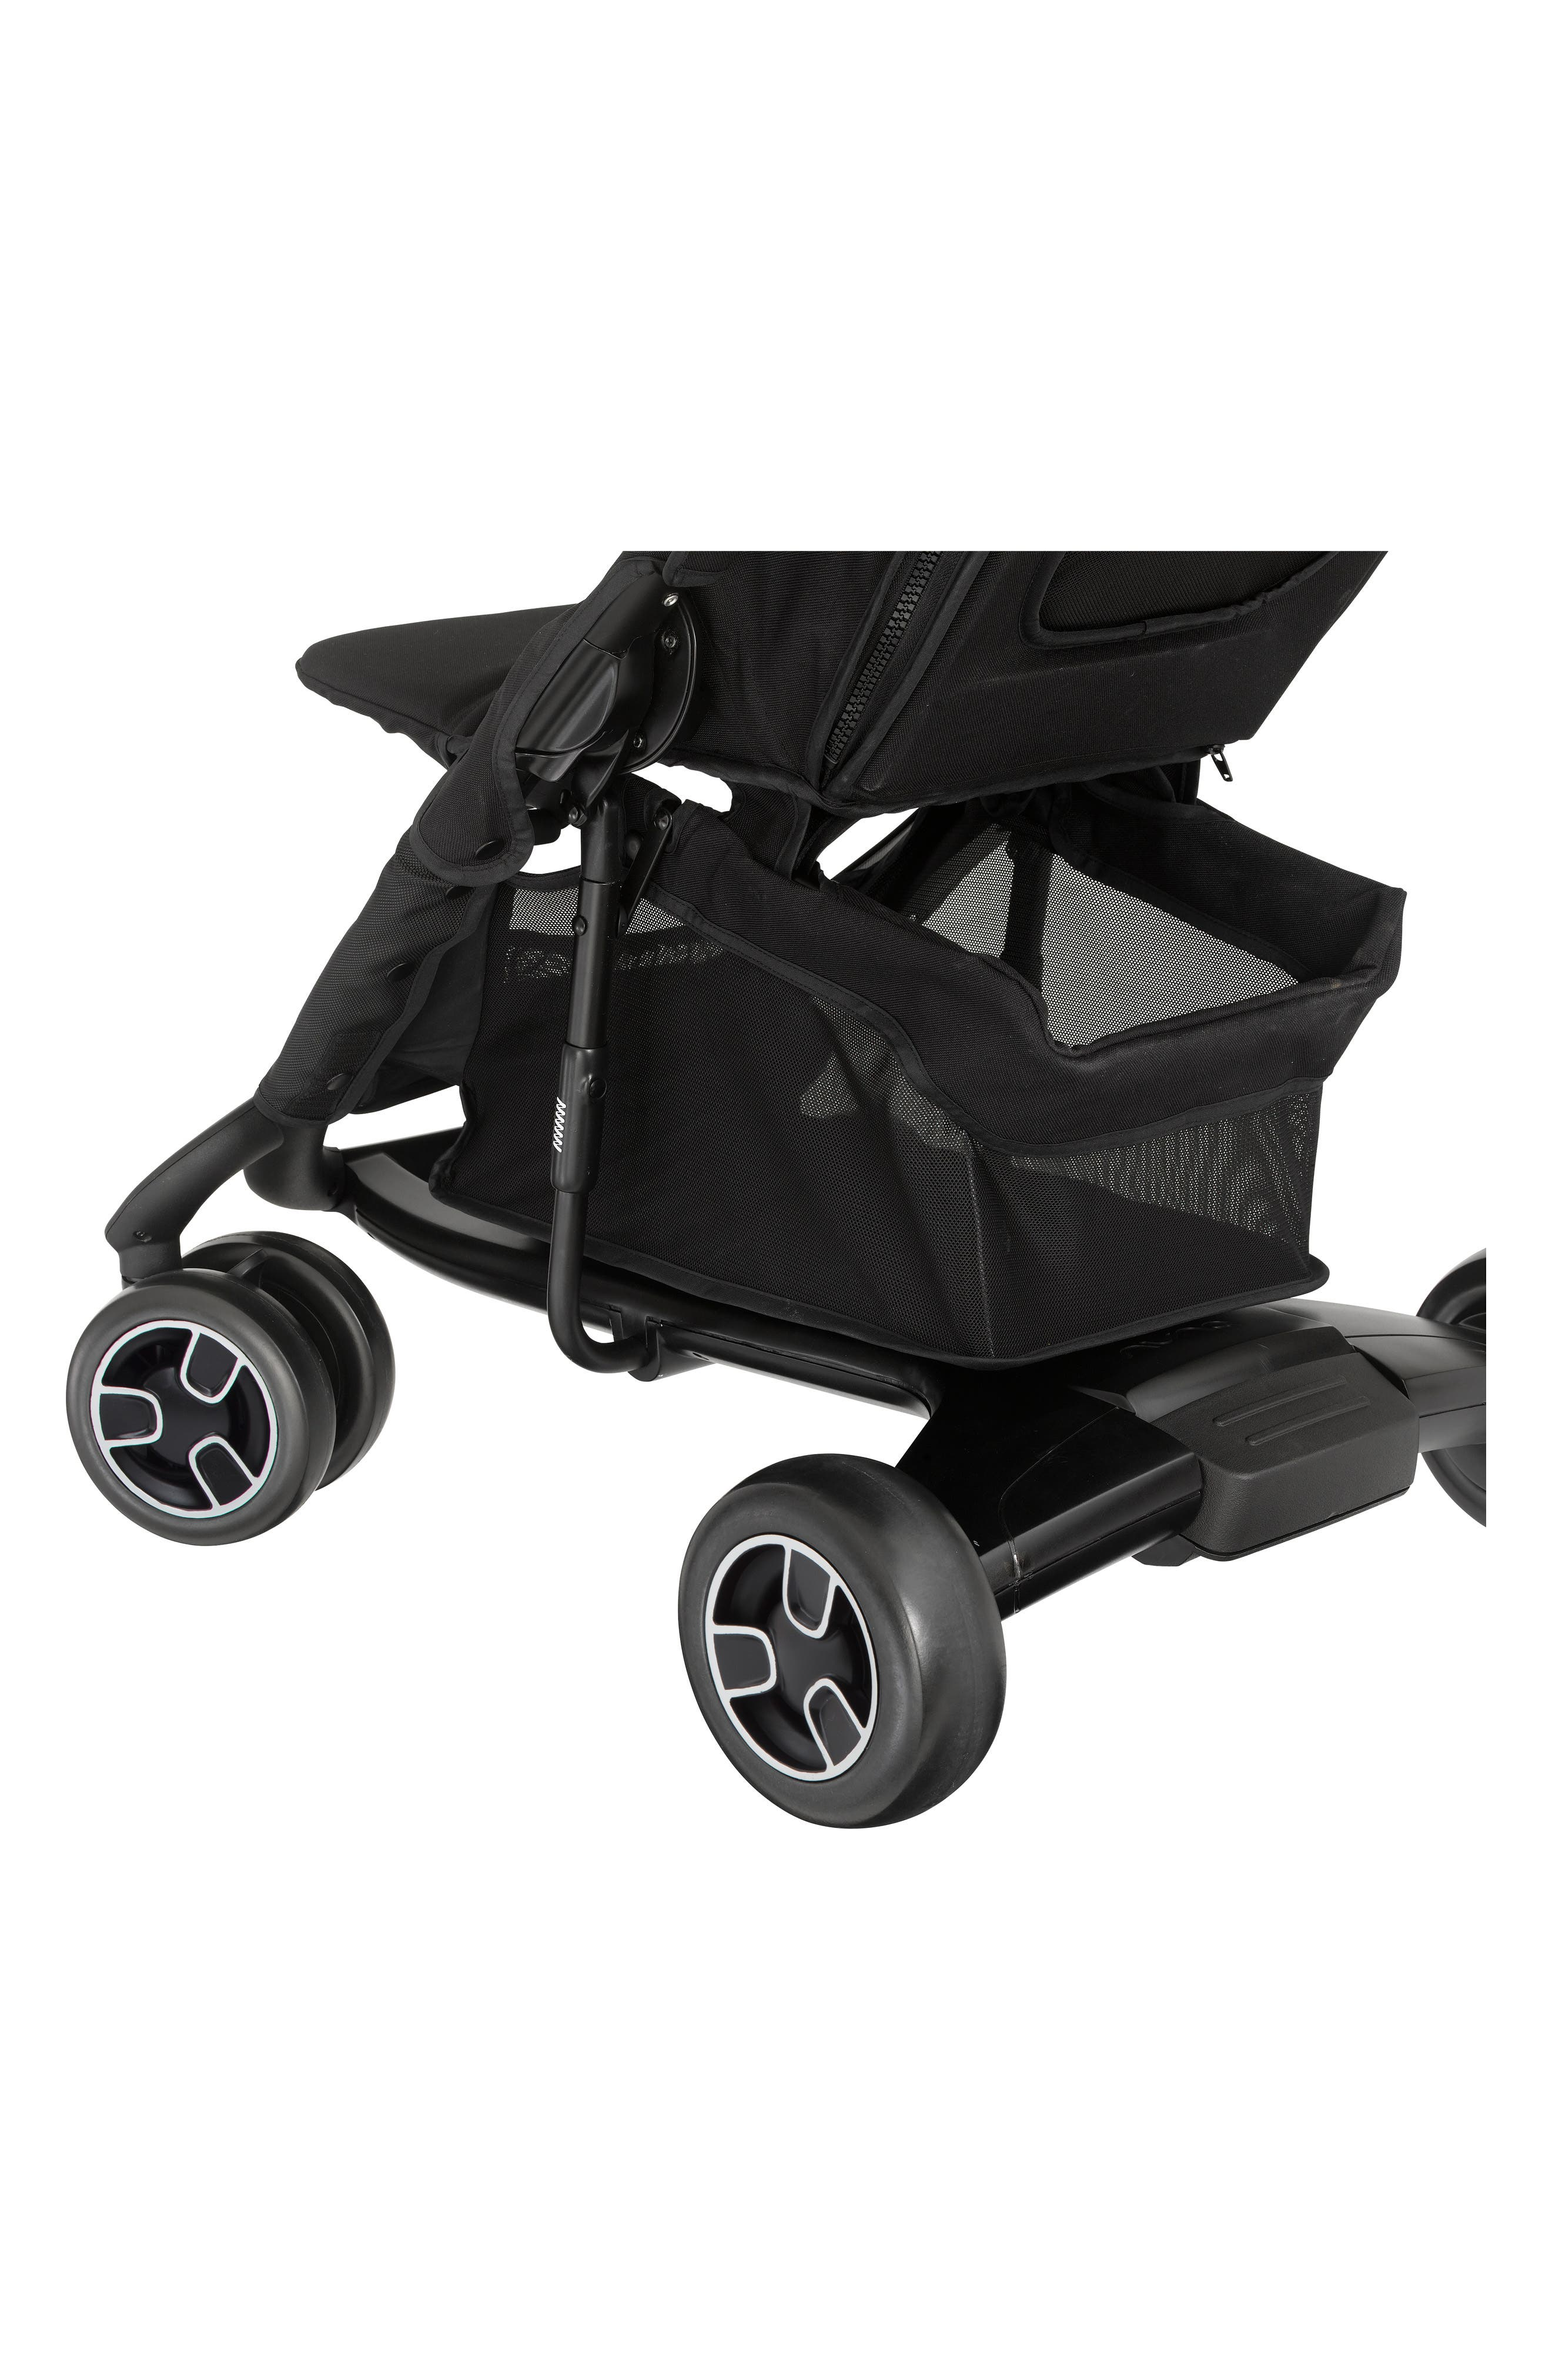 PEPP<sup>™</sup> Next Stroller,                             Alternate thumbnail 9, color,                             CAVIAR